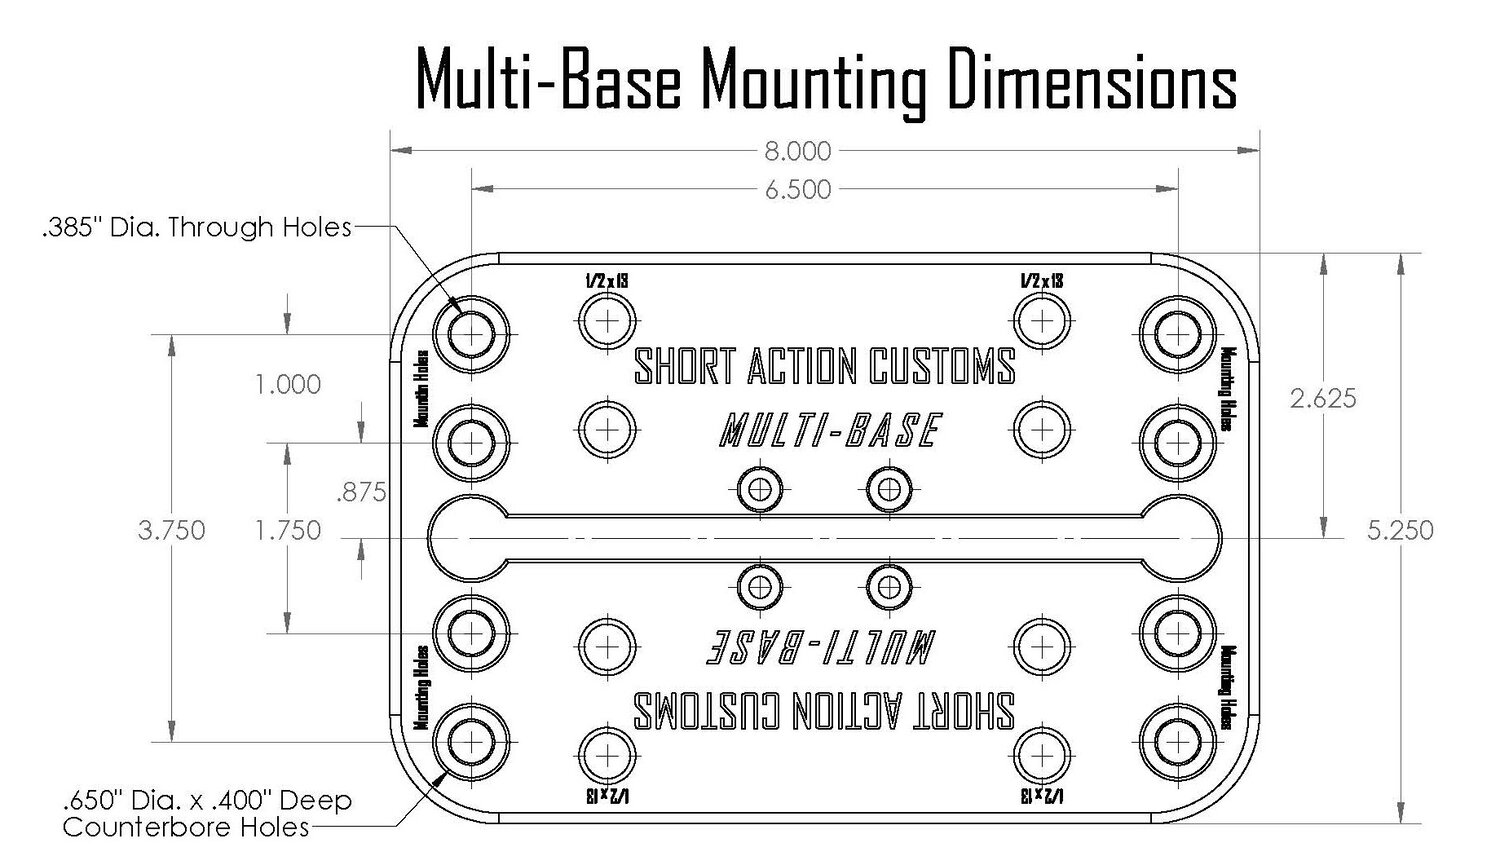 Multi-Base Mounting Dimensions